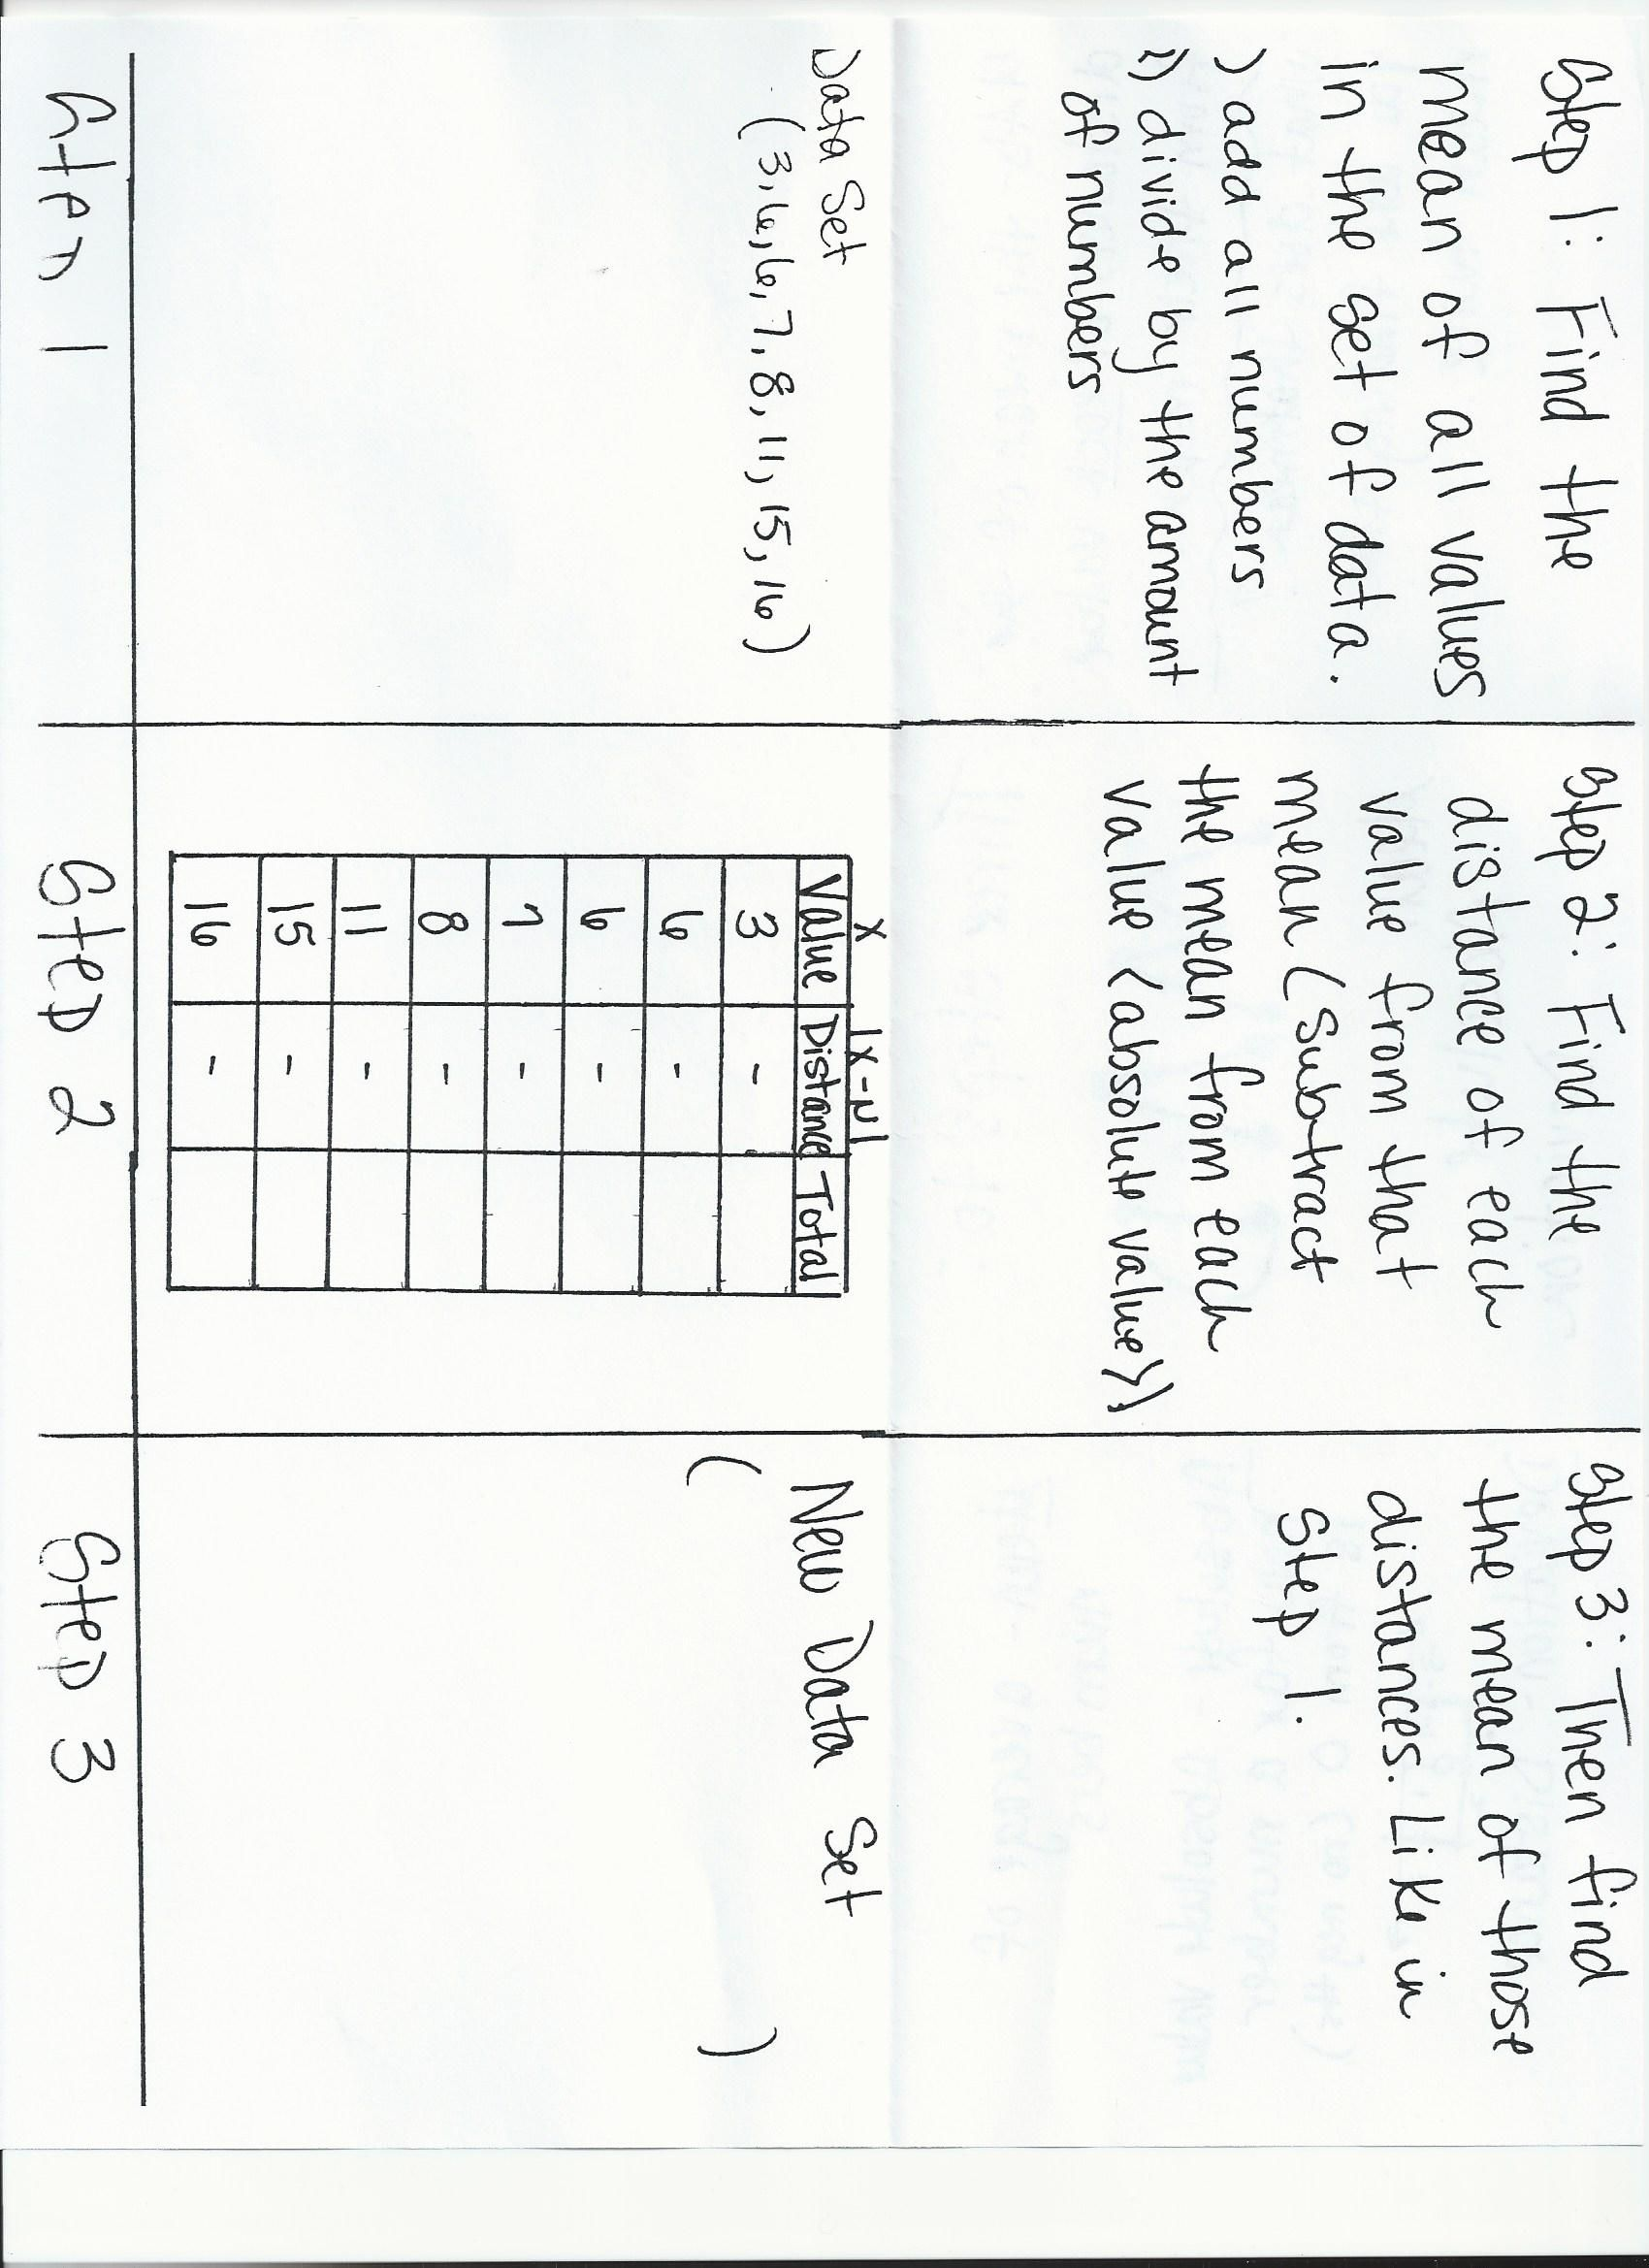 small resolution of Mean Absolute Deviation Foldable- Inside   Math school